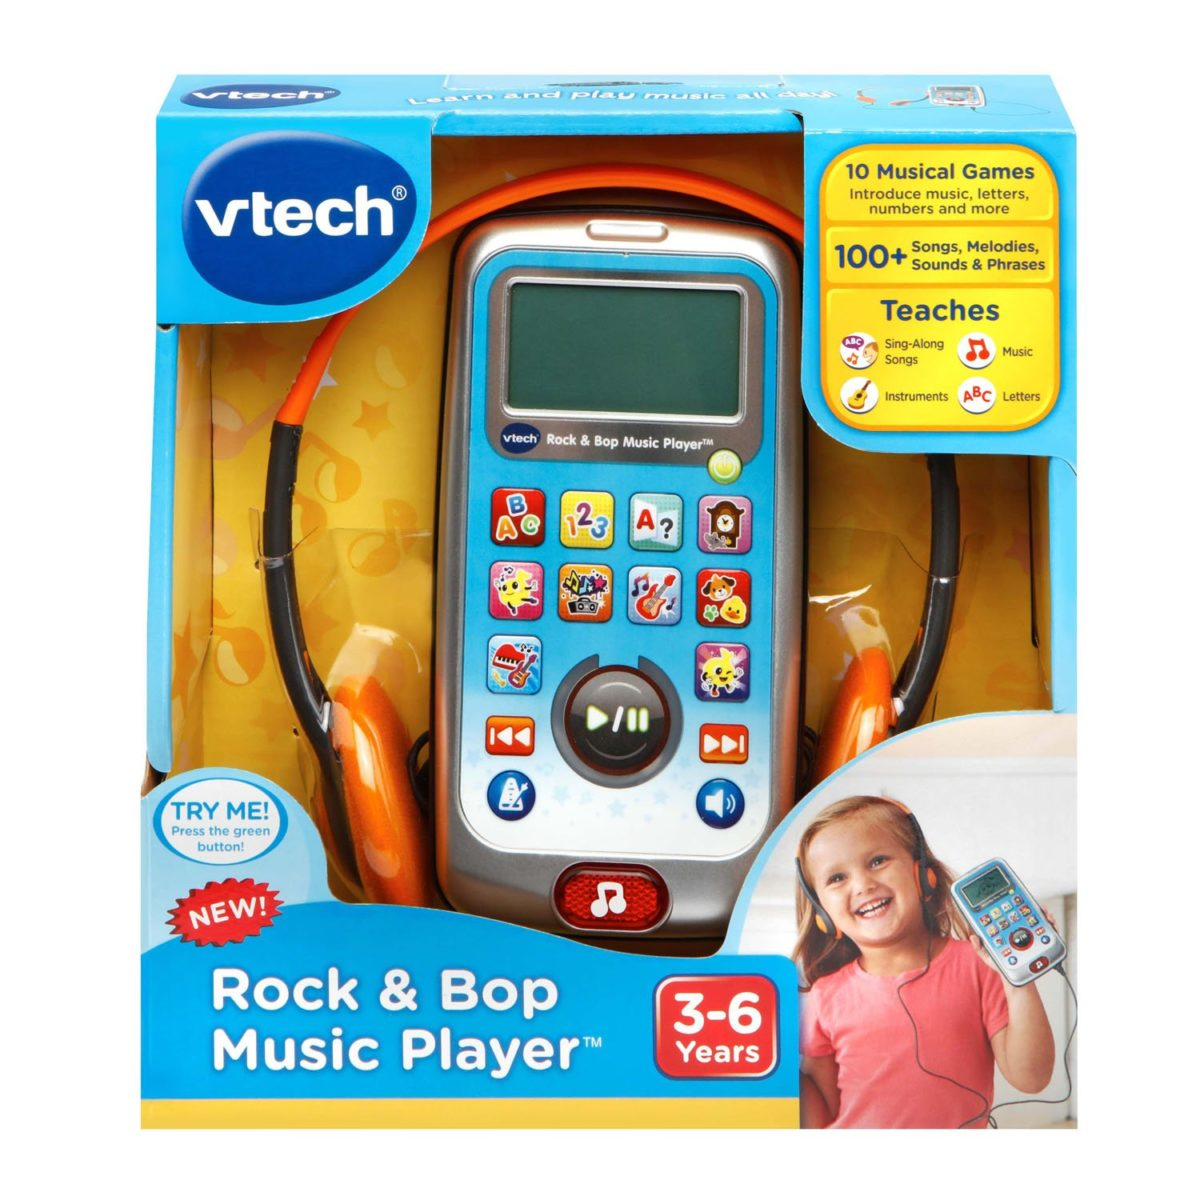 VTech-Rock-Bop-Music-Player1